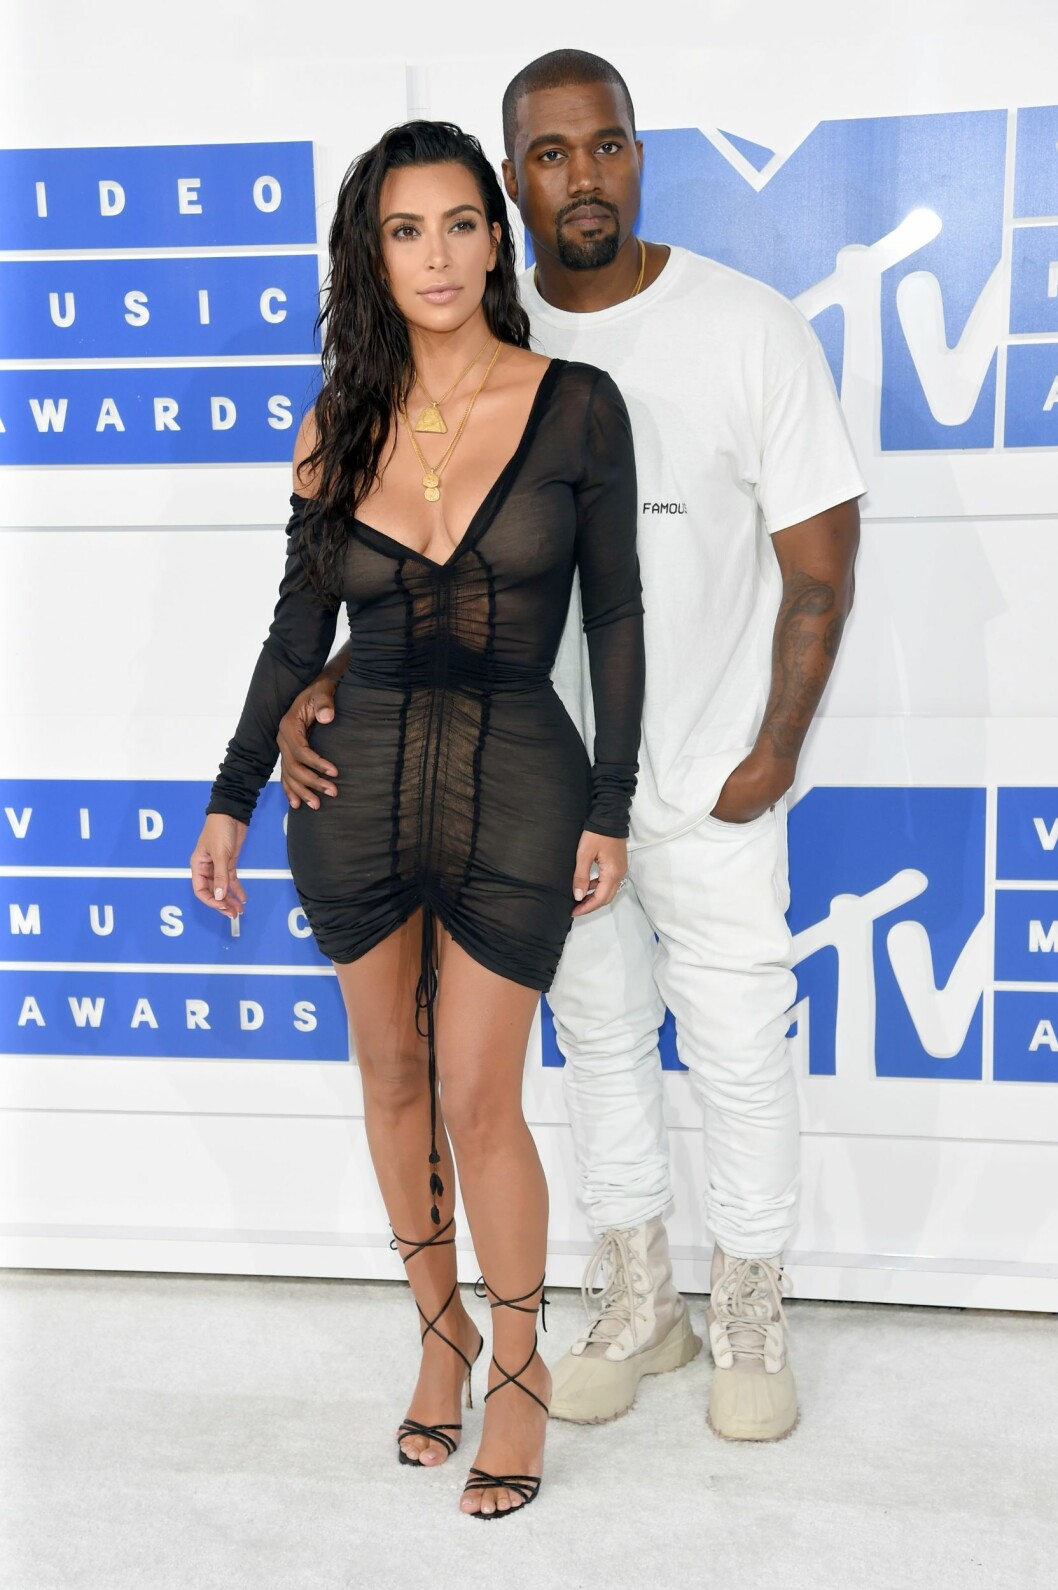 Superparet Kanye West and Kim Kardashian. Foto: Afp